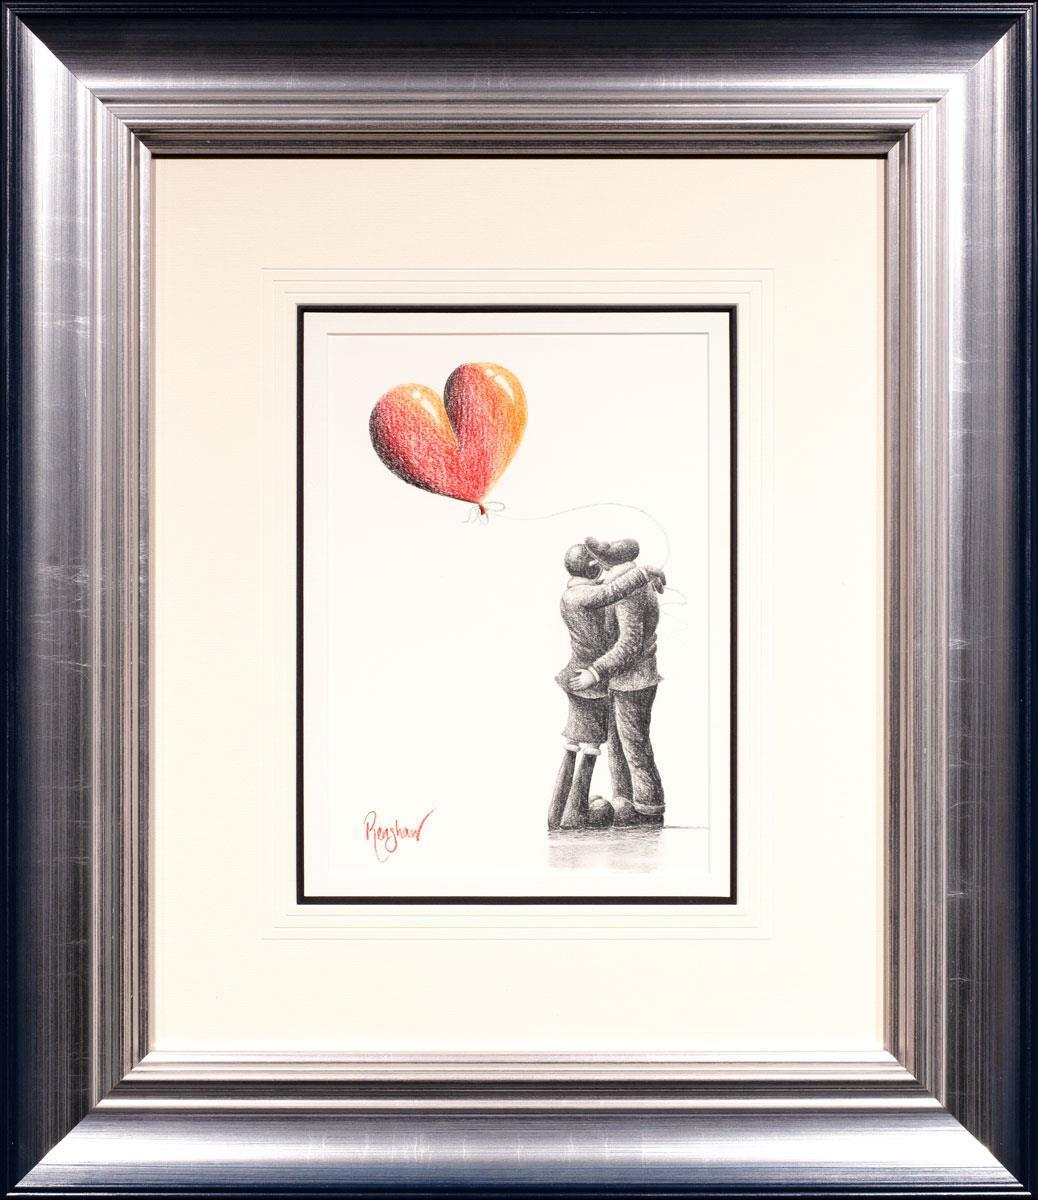 Loving Embrace David Renshaw Framed